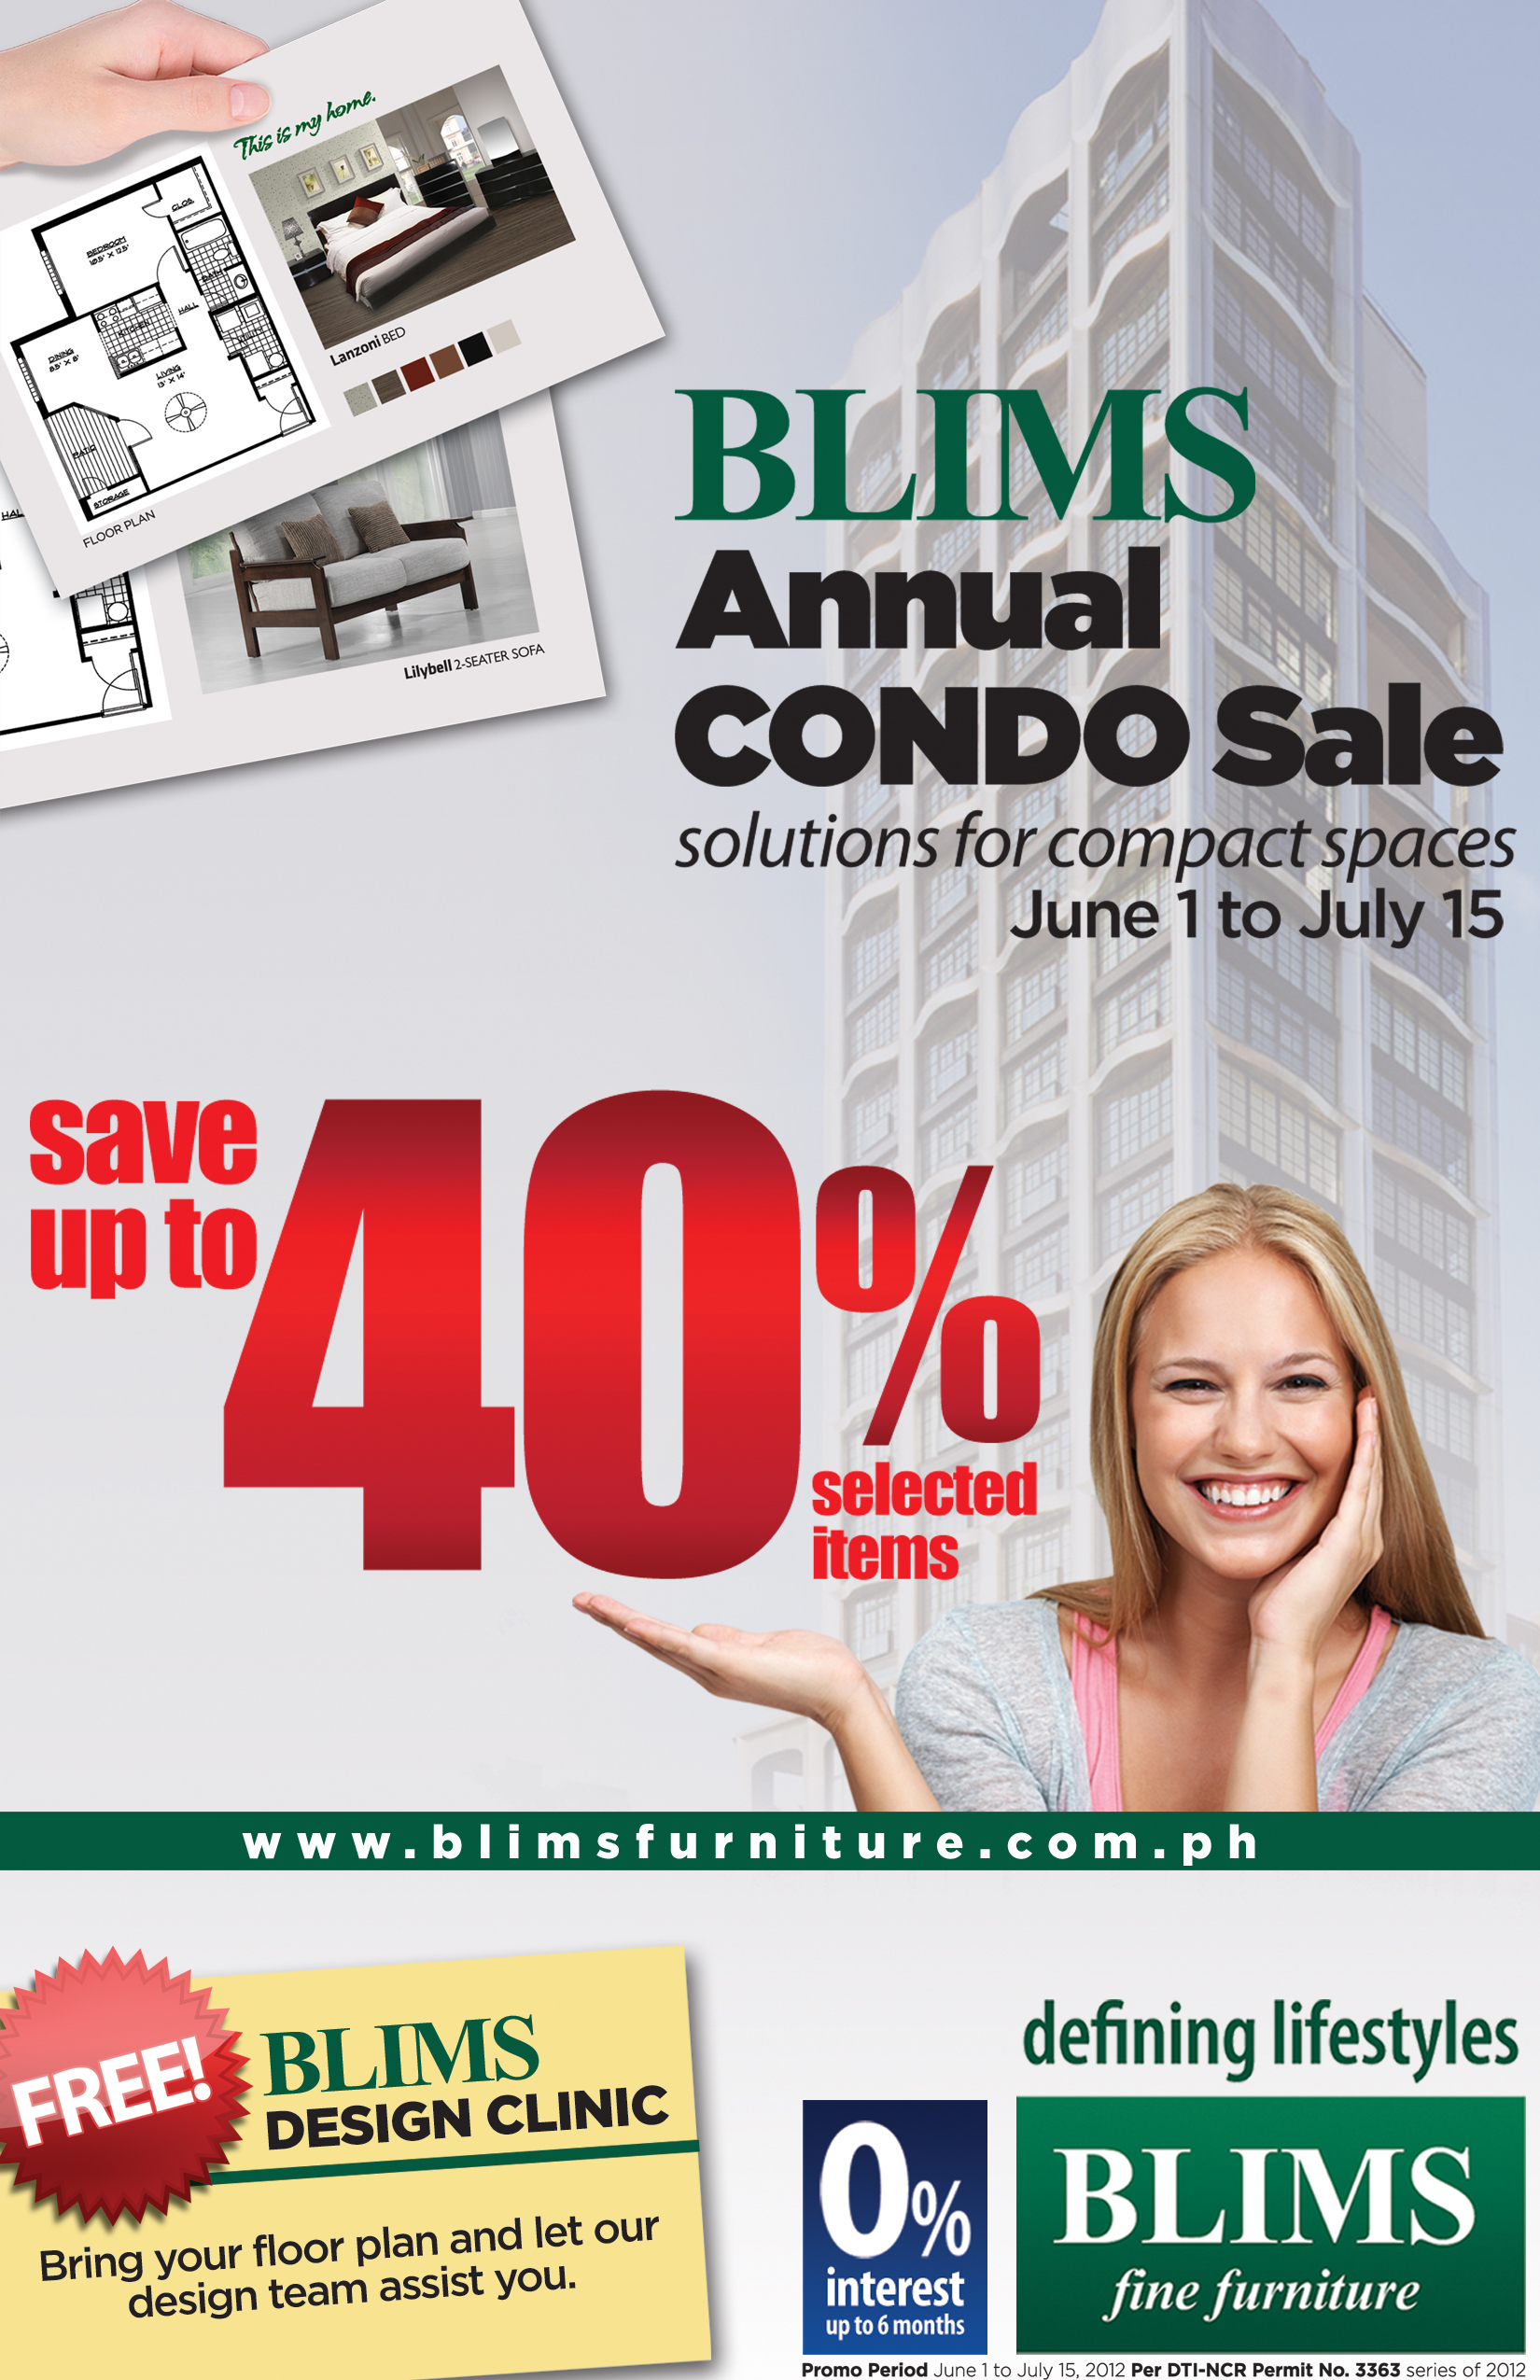 BLIMS Annual Condo sale June 2012